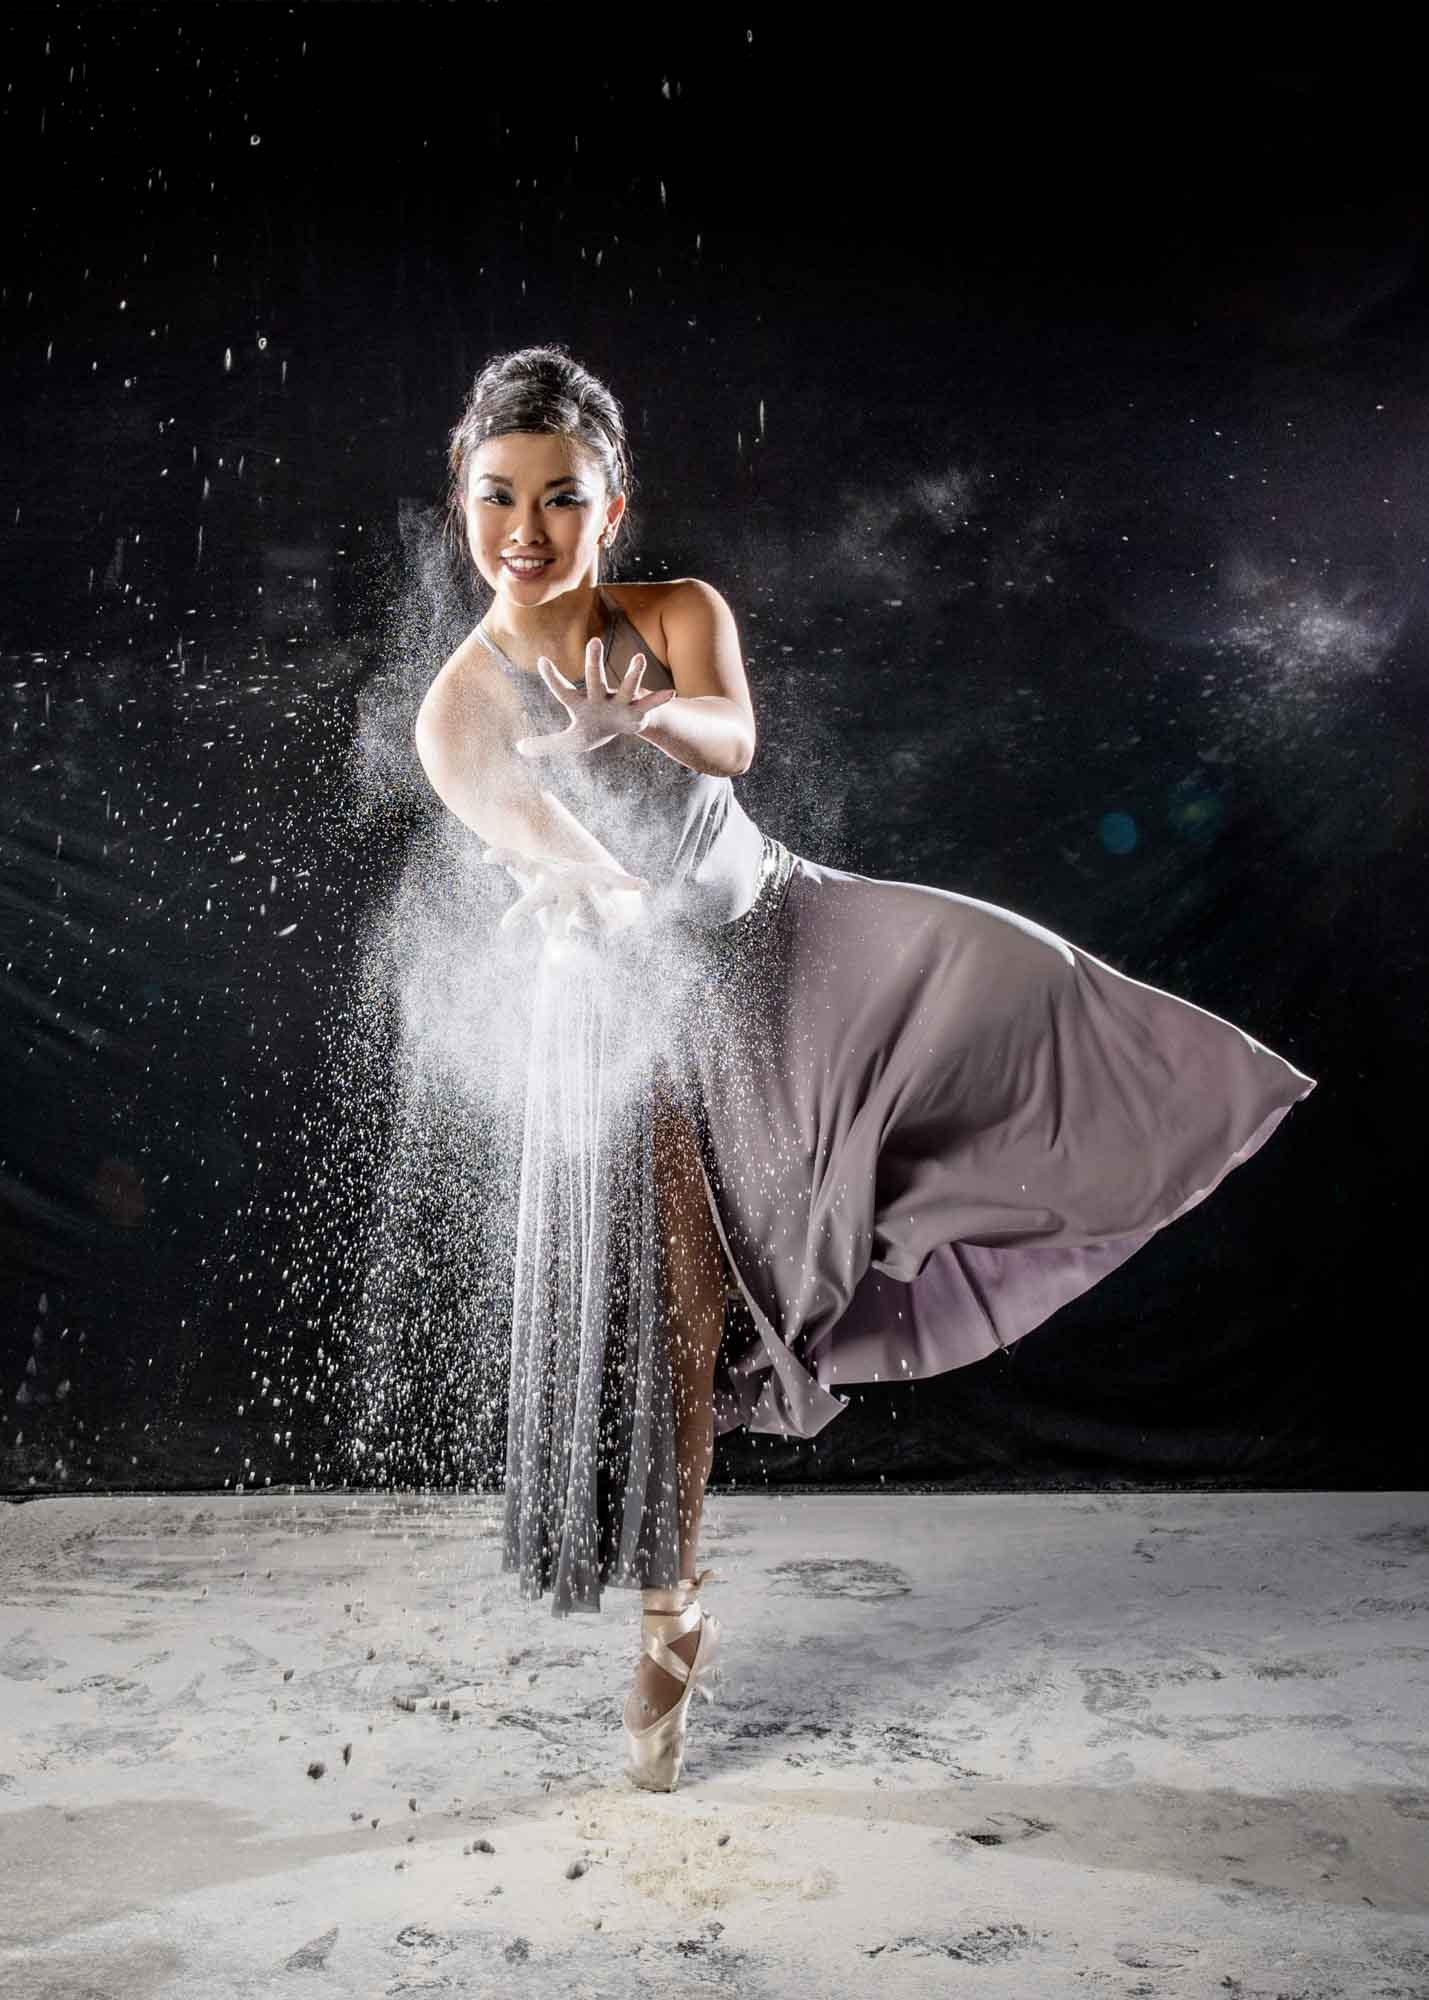 senior picture girl dancer with flour